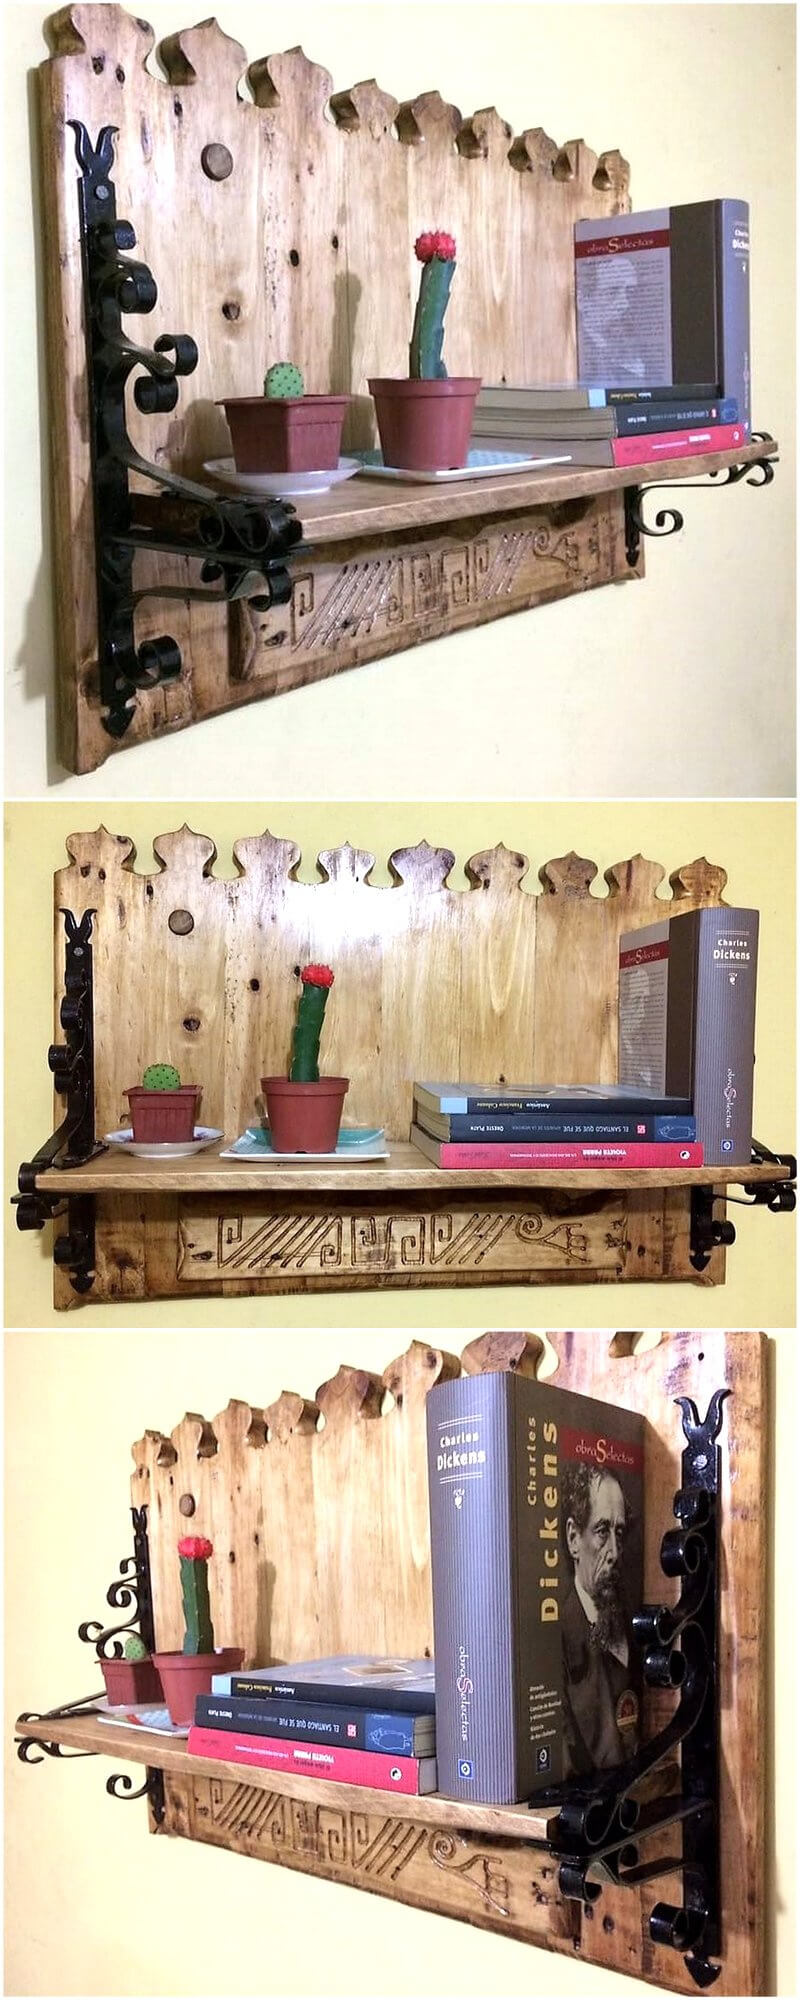 reclaimed pallets artistic shelf